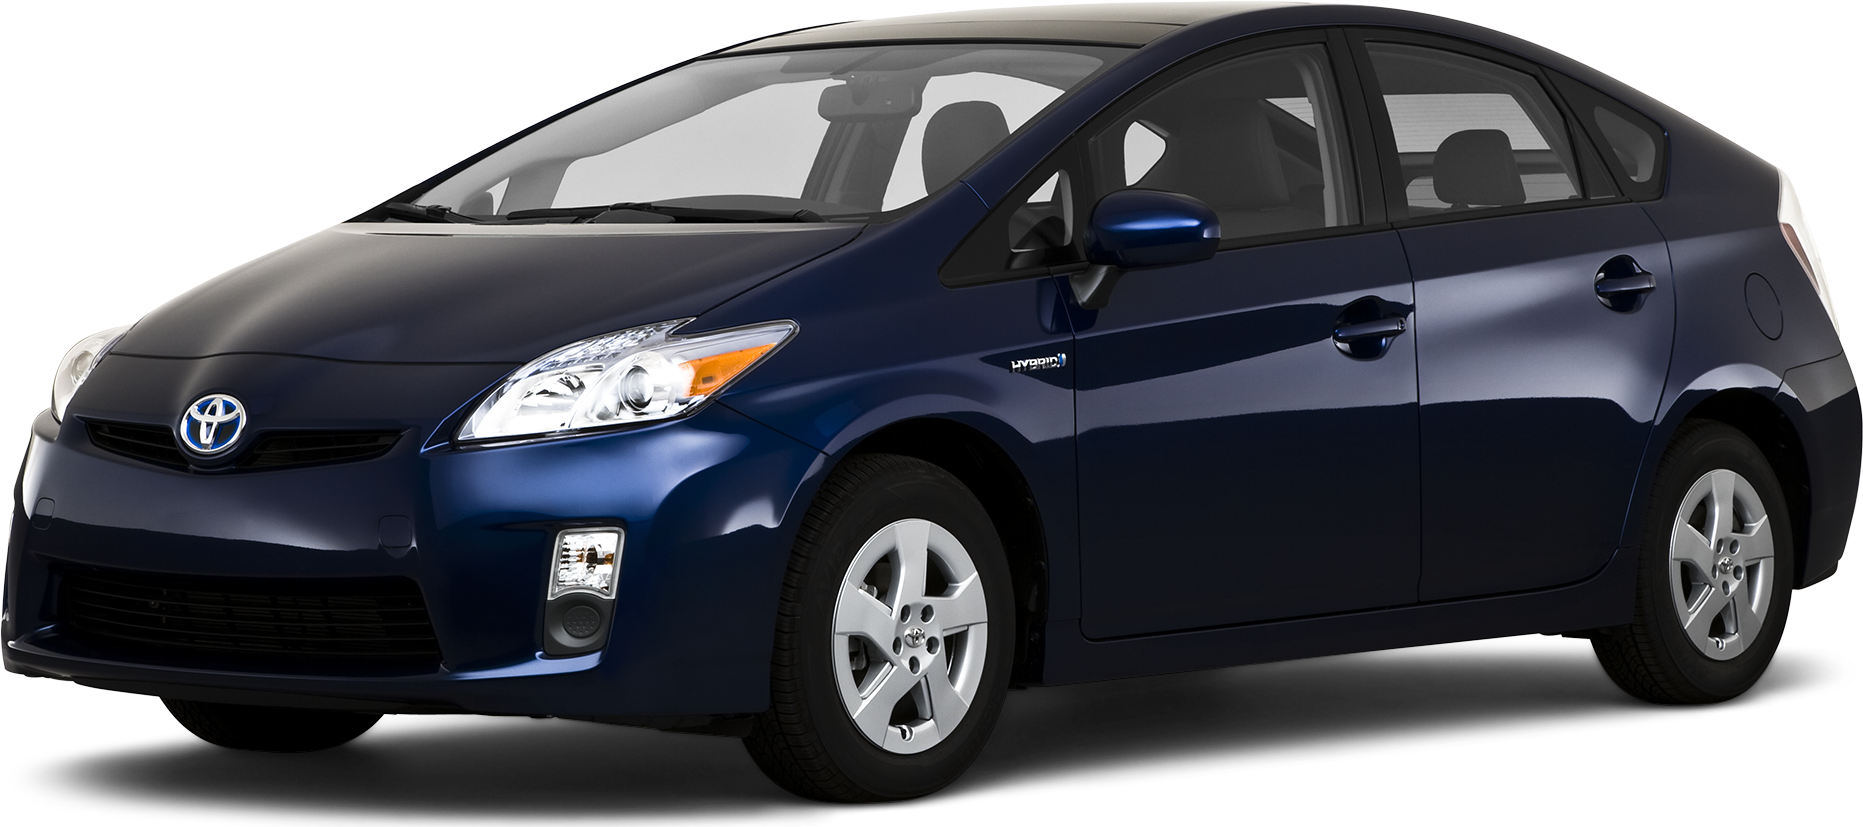 Used 2011 Toyota Corolla Values Cars For Sale Kelley Blue Book